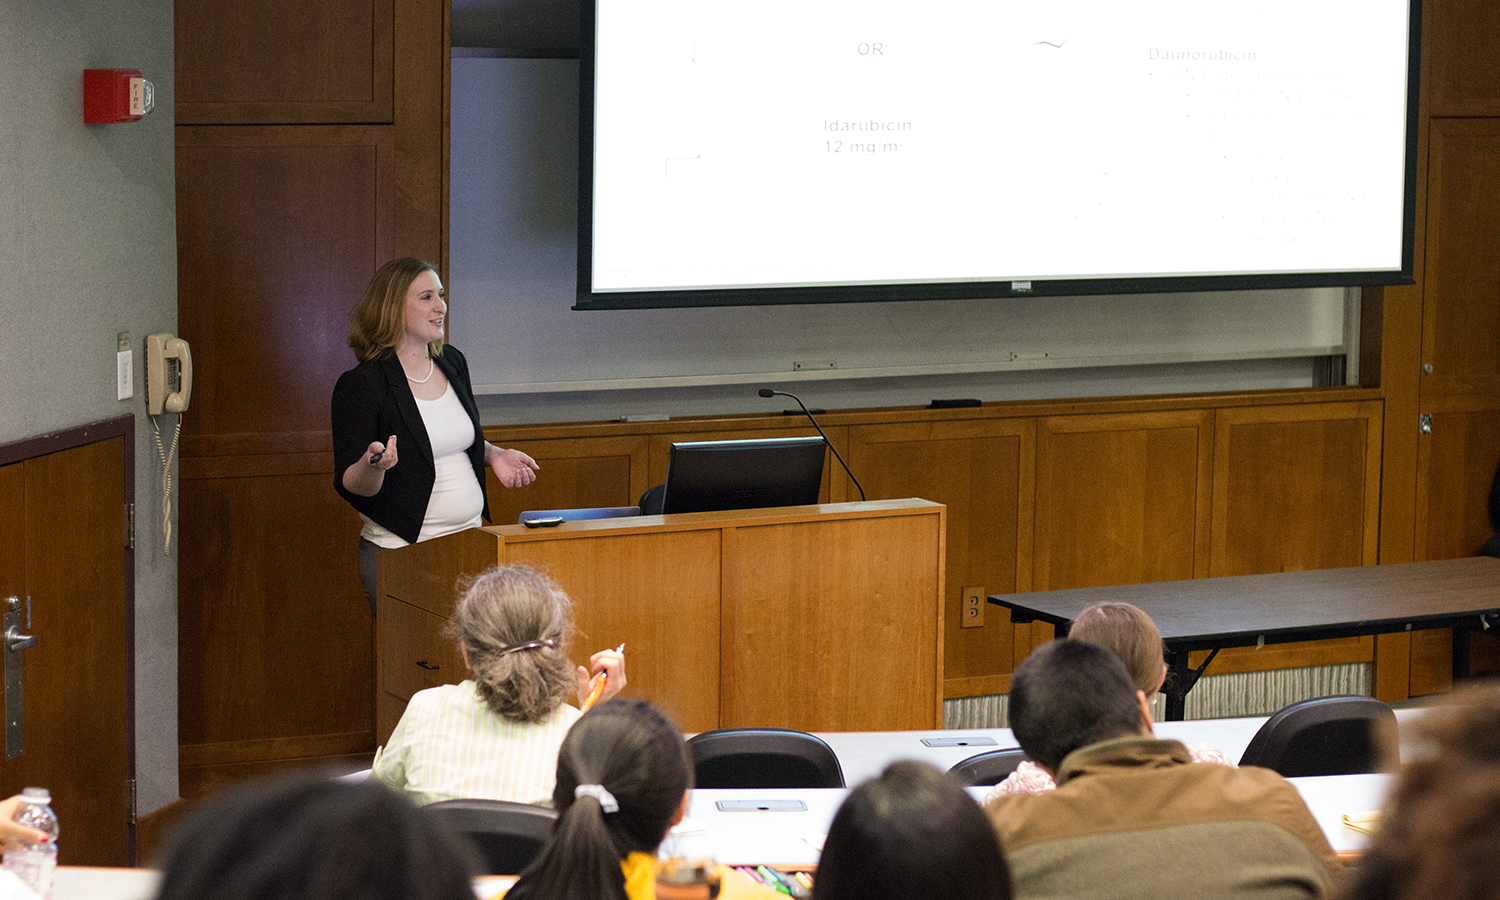 Dr. Kaitlyn Dykstra of the Roswell Park Cancer Institutue discusses her research on acute myeloid leukemia during a seminar in the Sanford Room of Warren Hunting Smith Library.